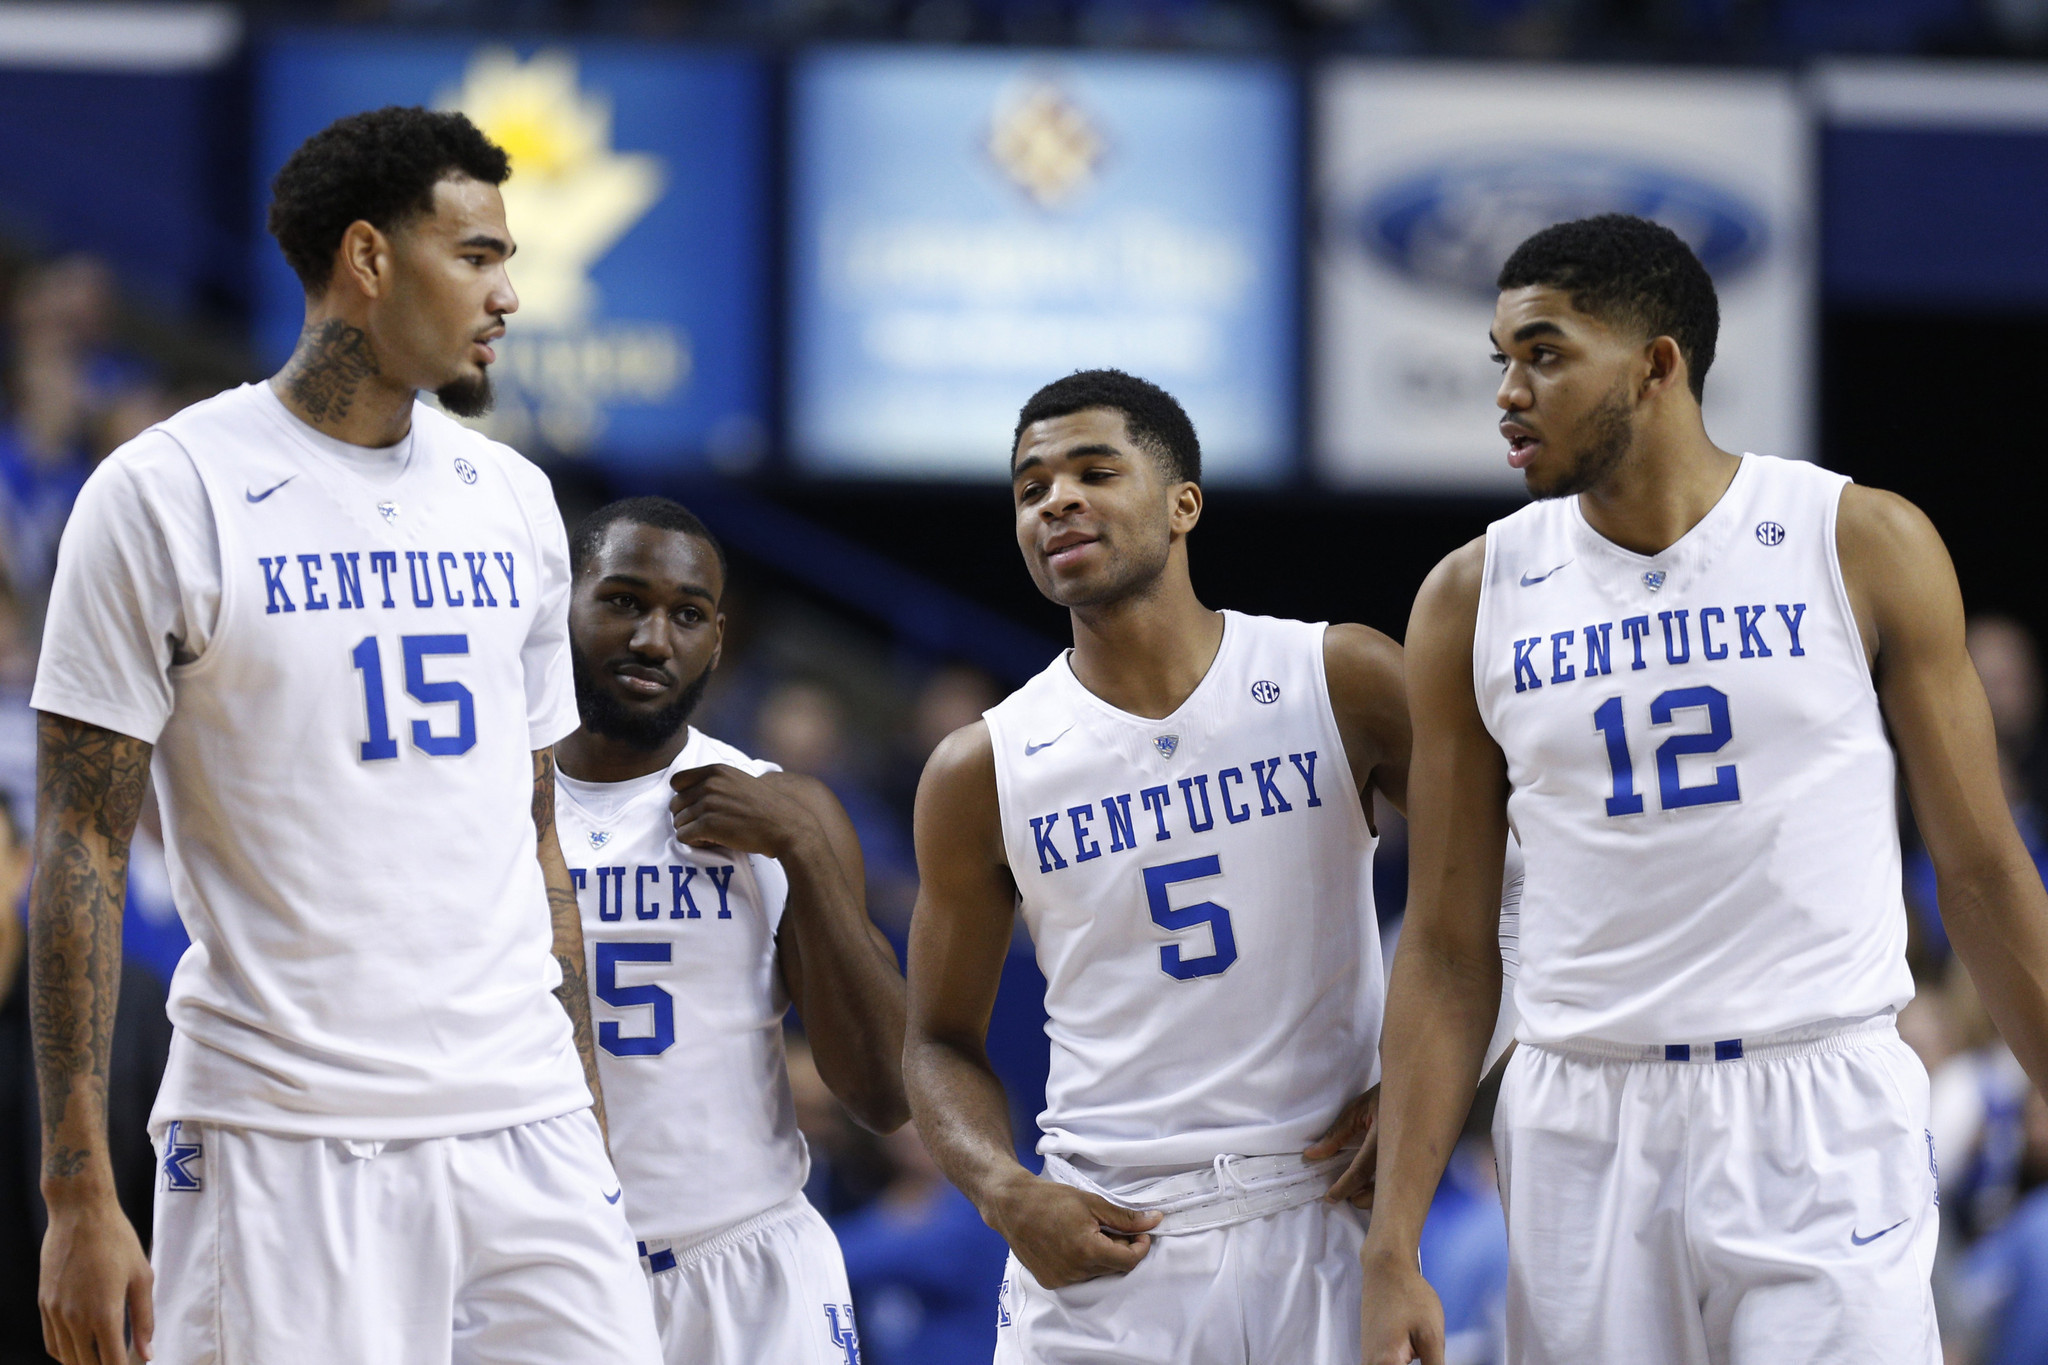 SMU's Larry Brown says Kentucky could be an NBA playoff team in East